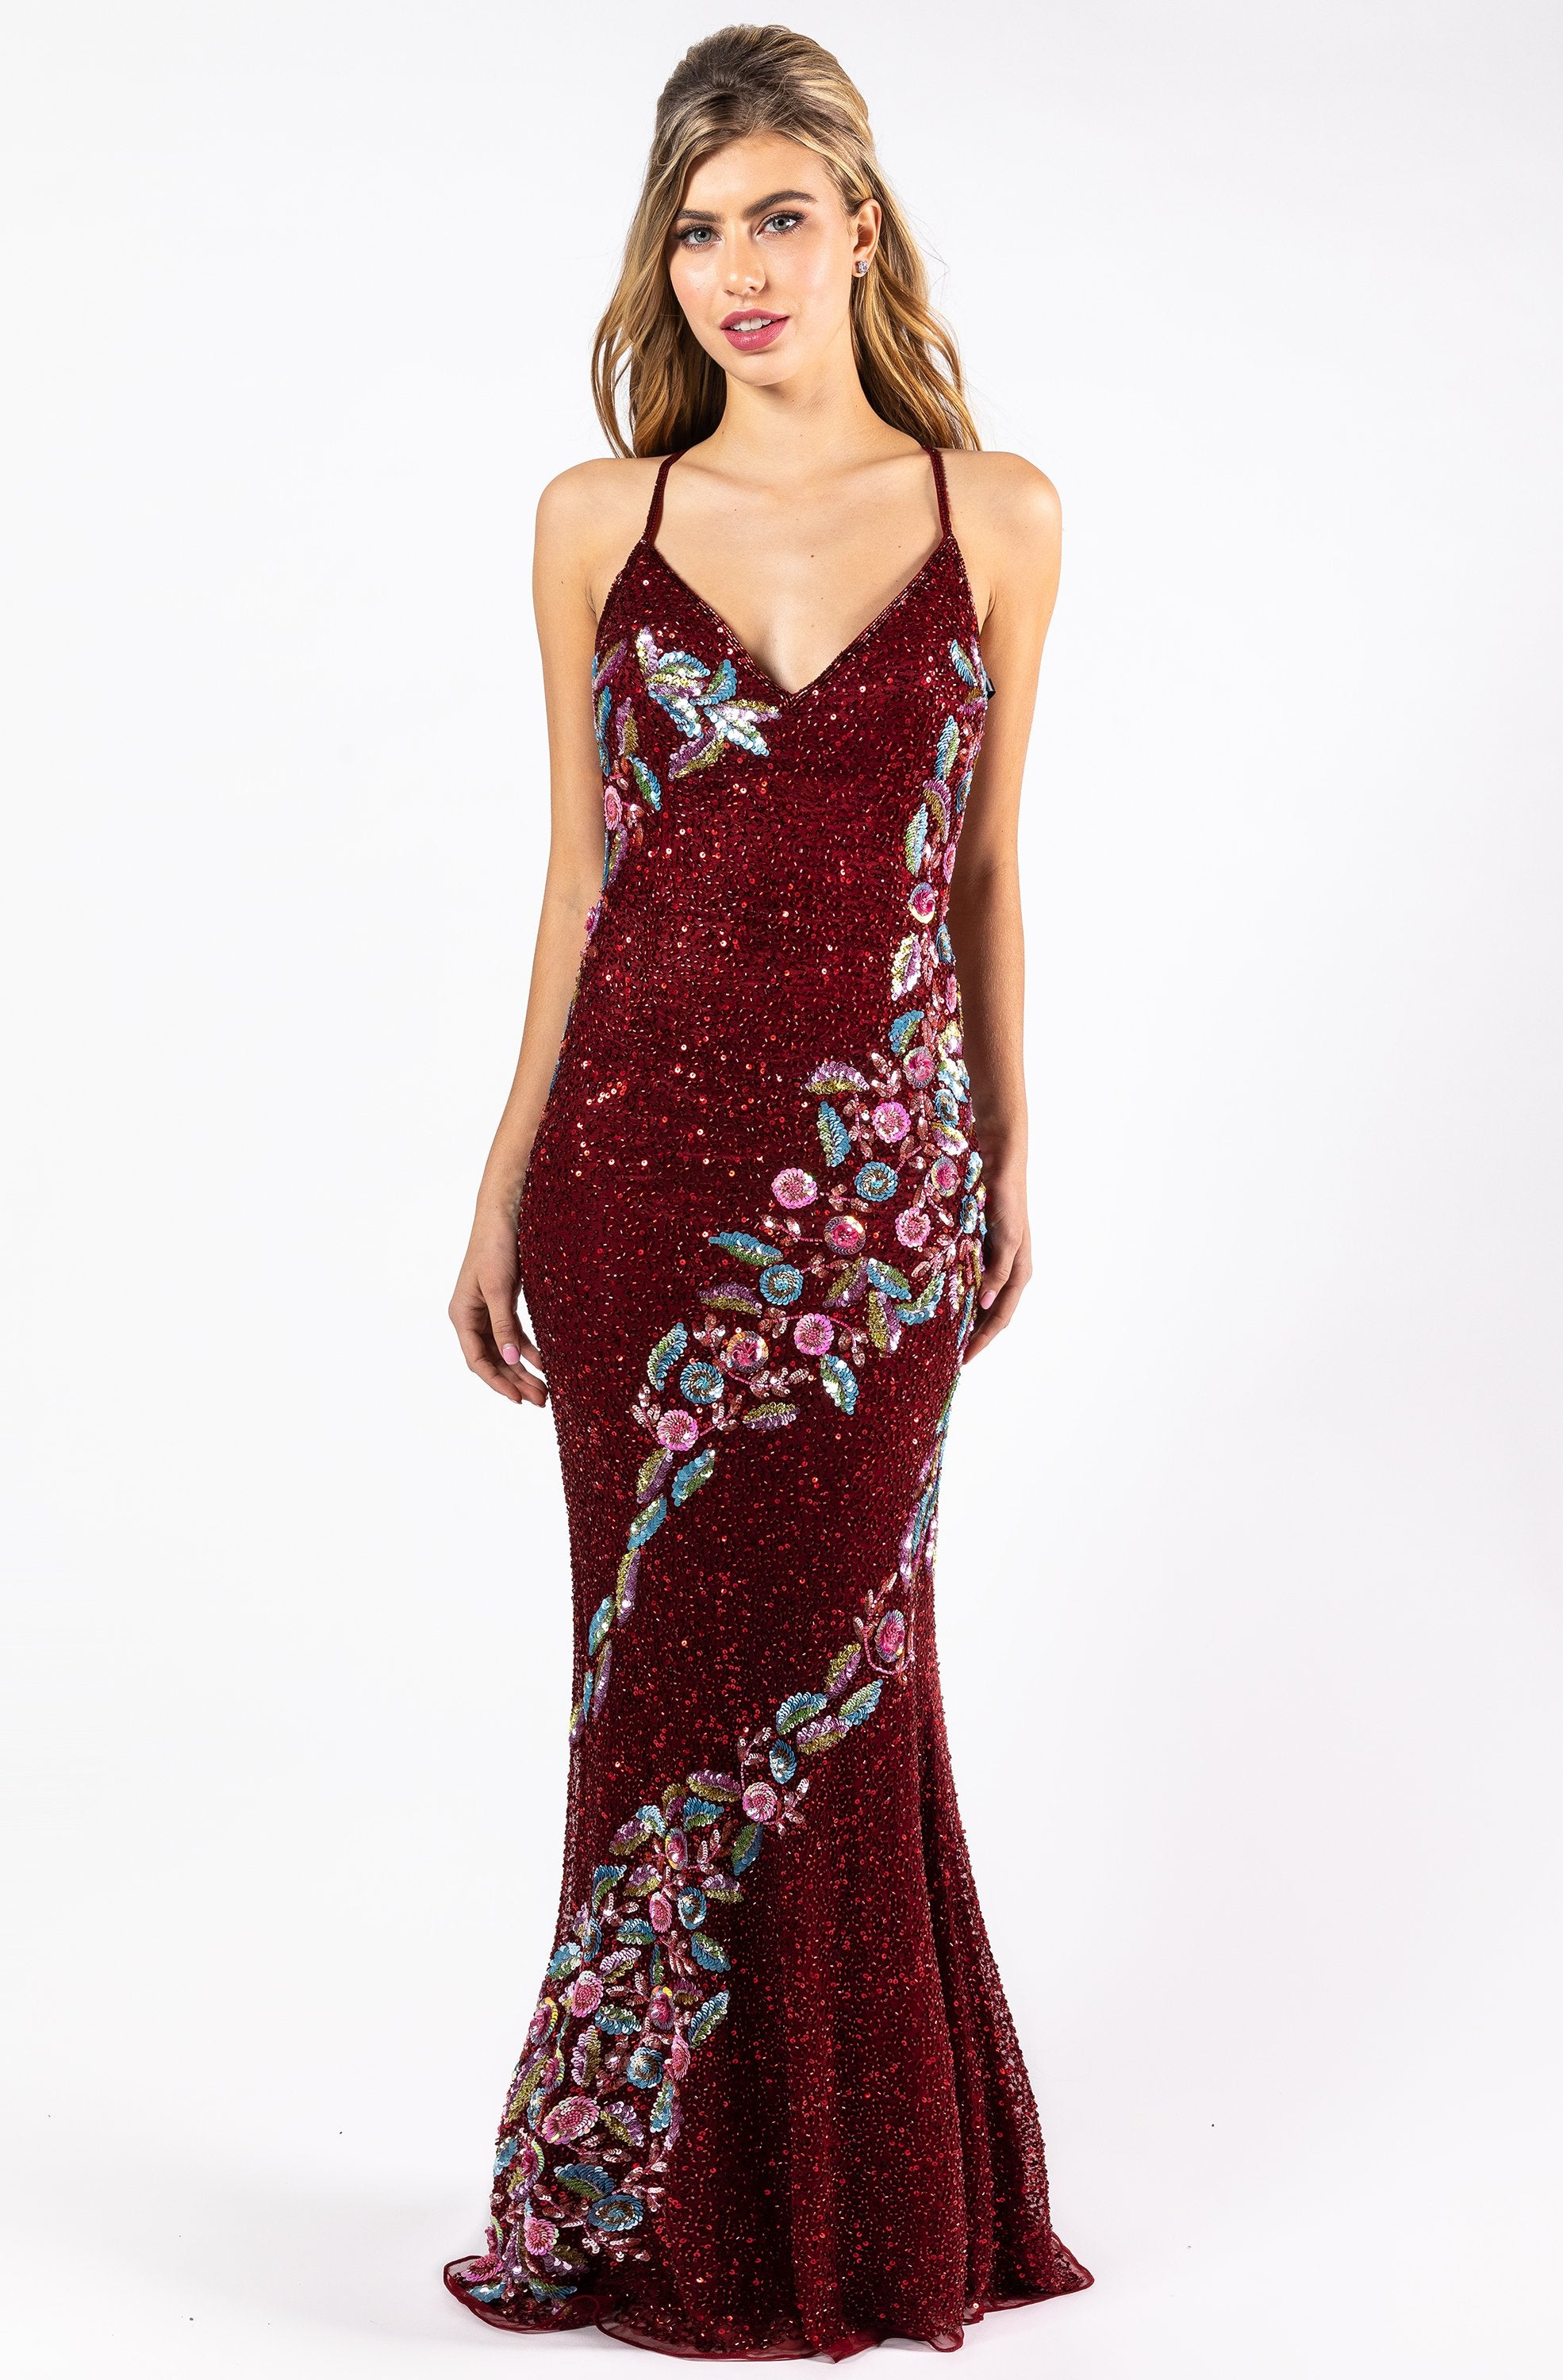 Primavera Couture - 3243 Vibrant Contrast Floral Beaded Gown In Red and Multi-Color